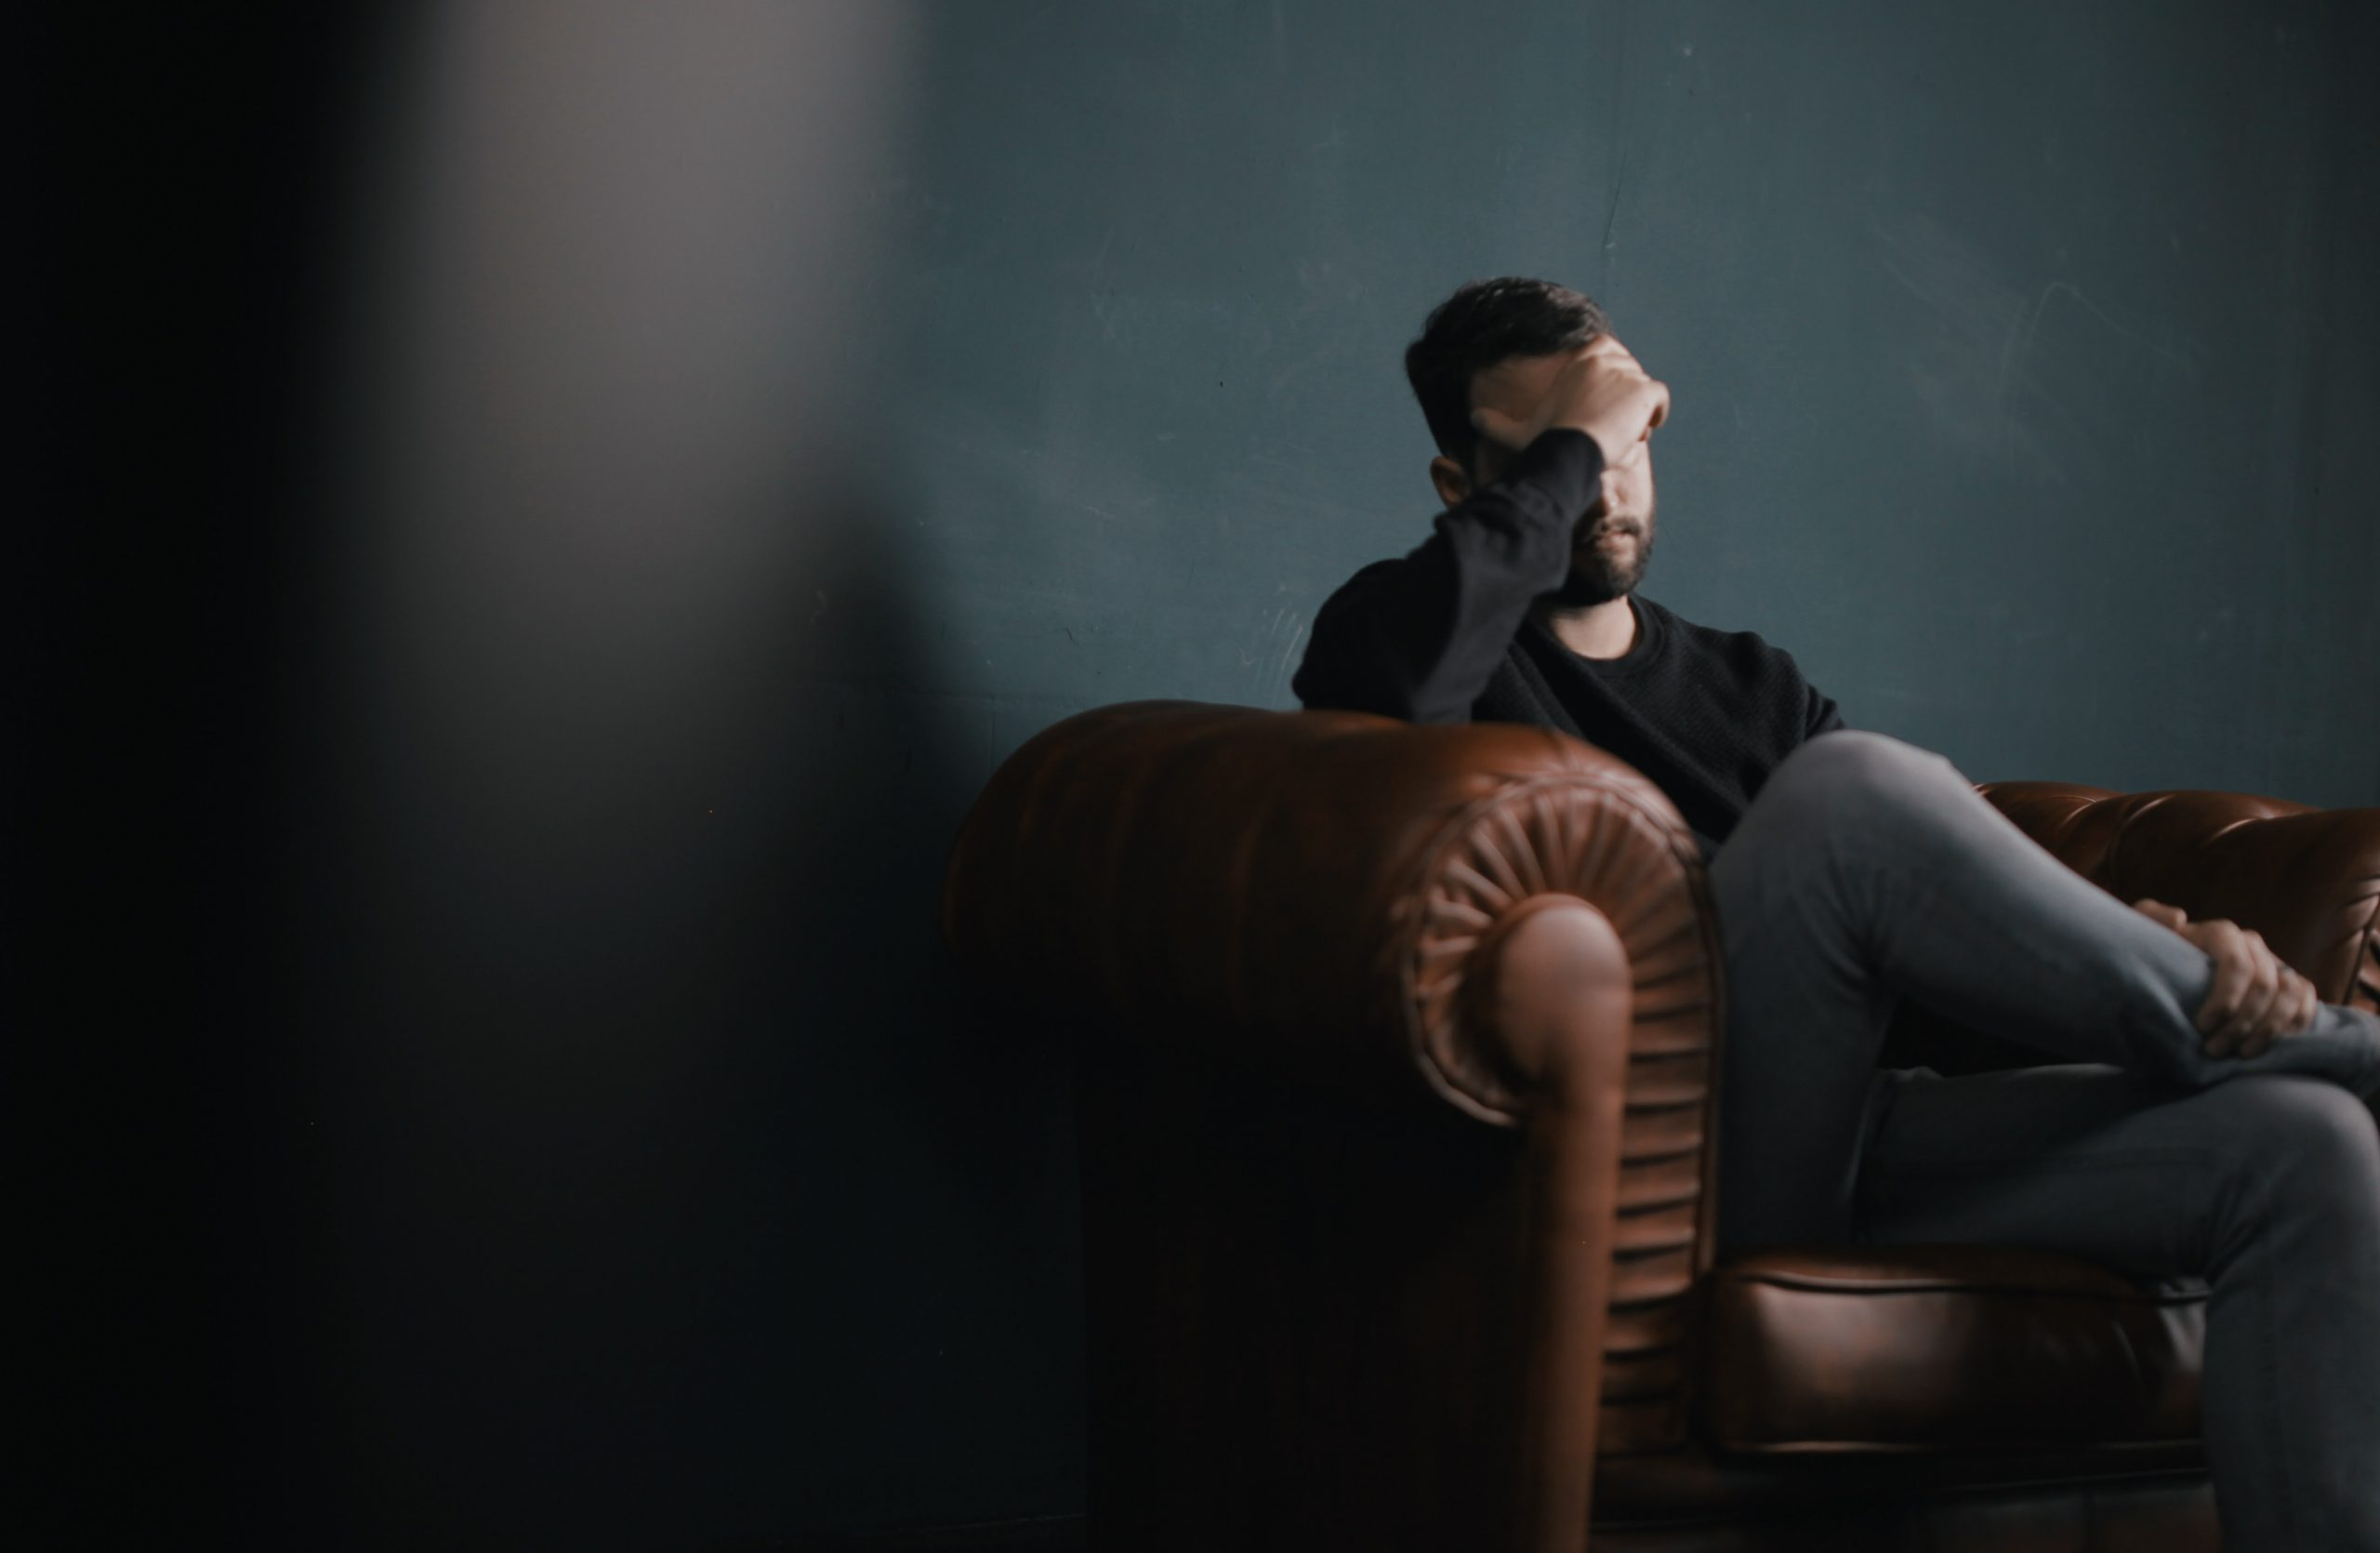 Man on couch mental health struggle